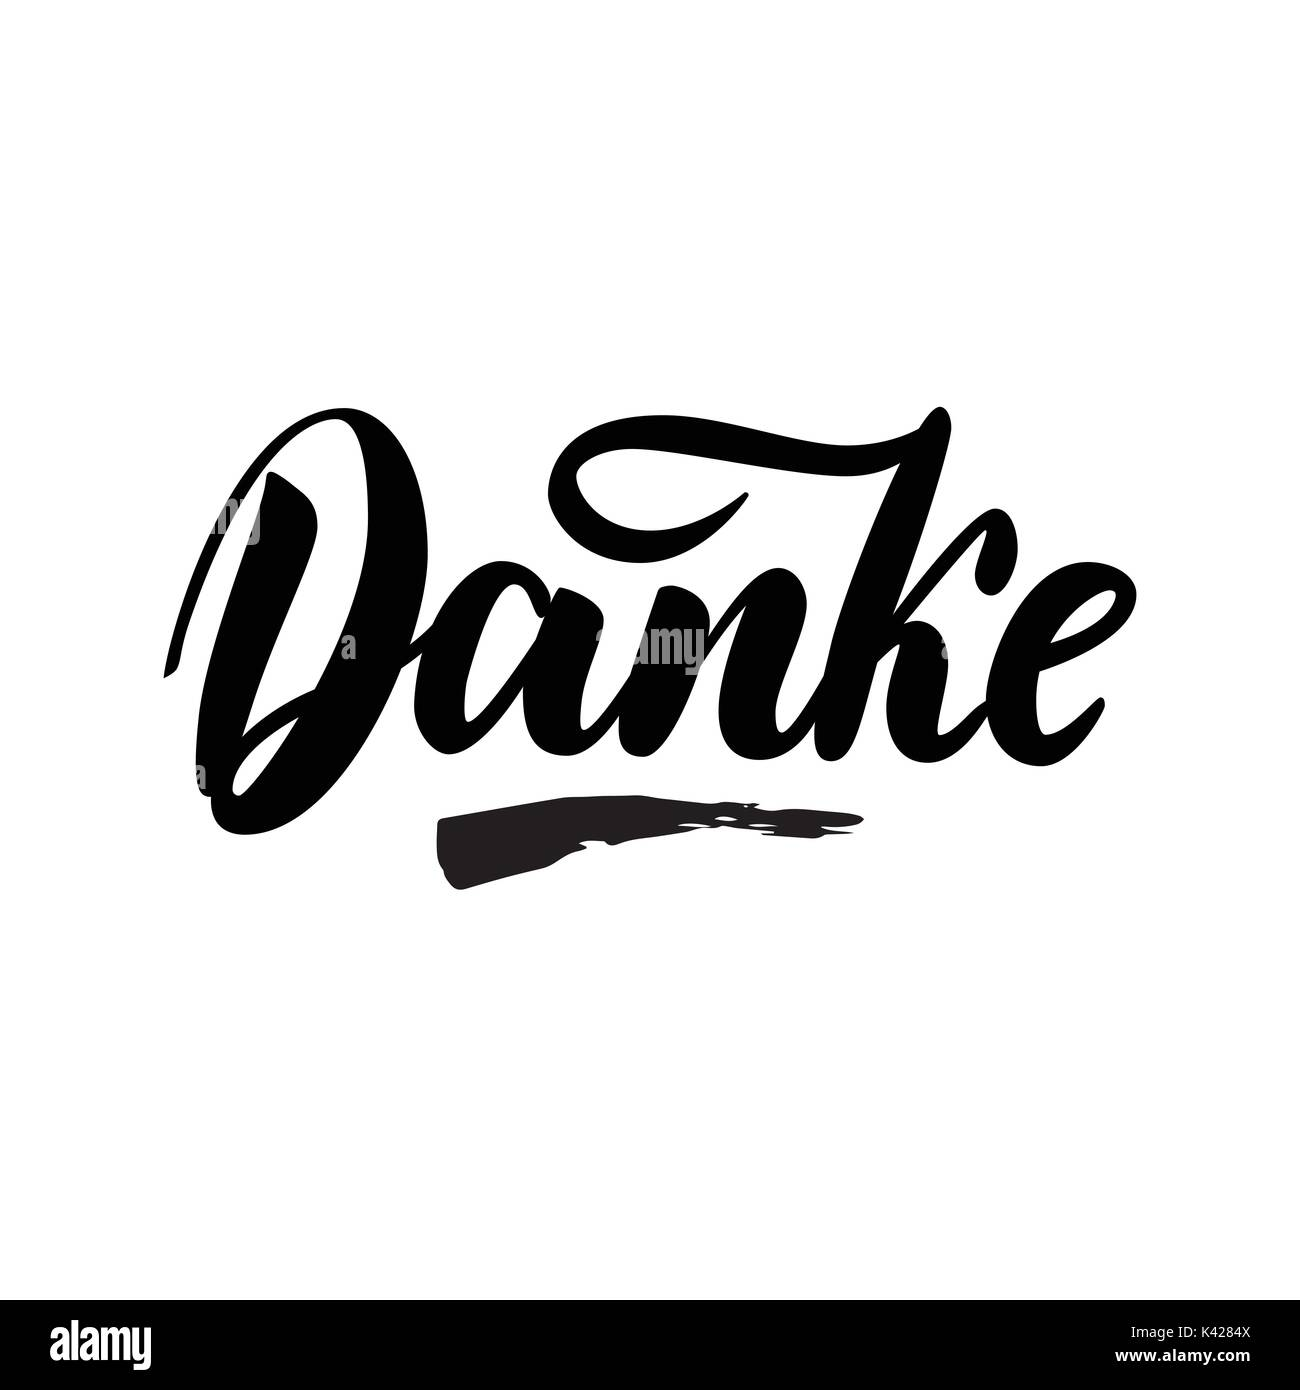 Thank you in German. Vector calligraphy. Danke poster or card. Grey Letters on the White Background. Hand-drawn Stock Vector